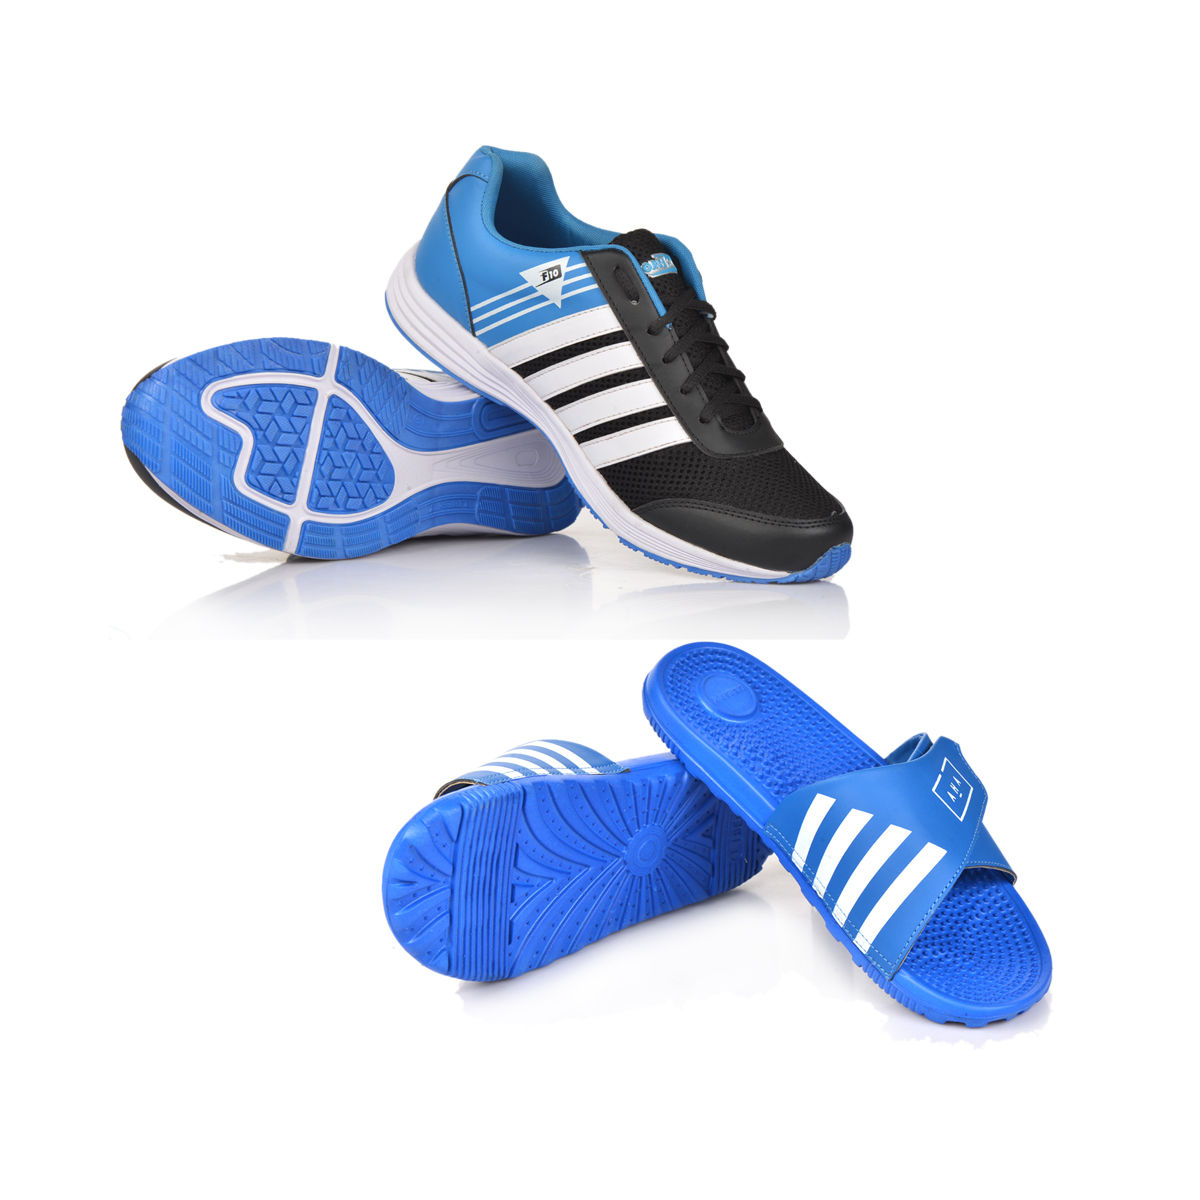 6676370f4c52f Buy Liberty Stylish Shoes + Acupressure Slipons (C4) Online at Best Price in  India on Naaptol.com